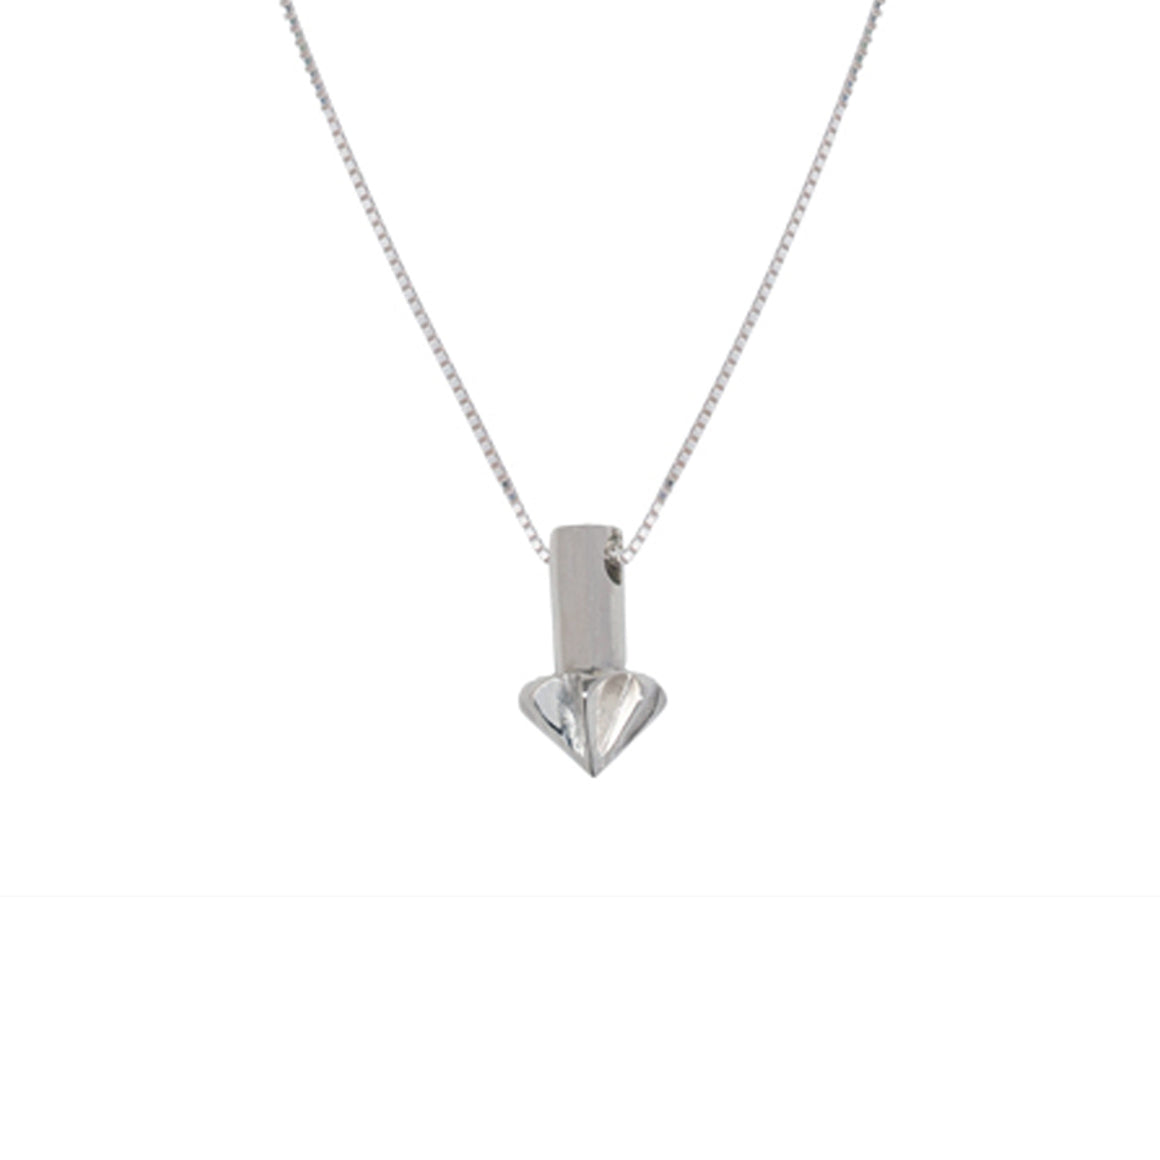 Edge Only Countersink Pendant in sterling silver